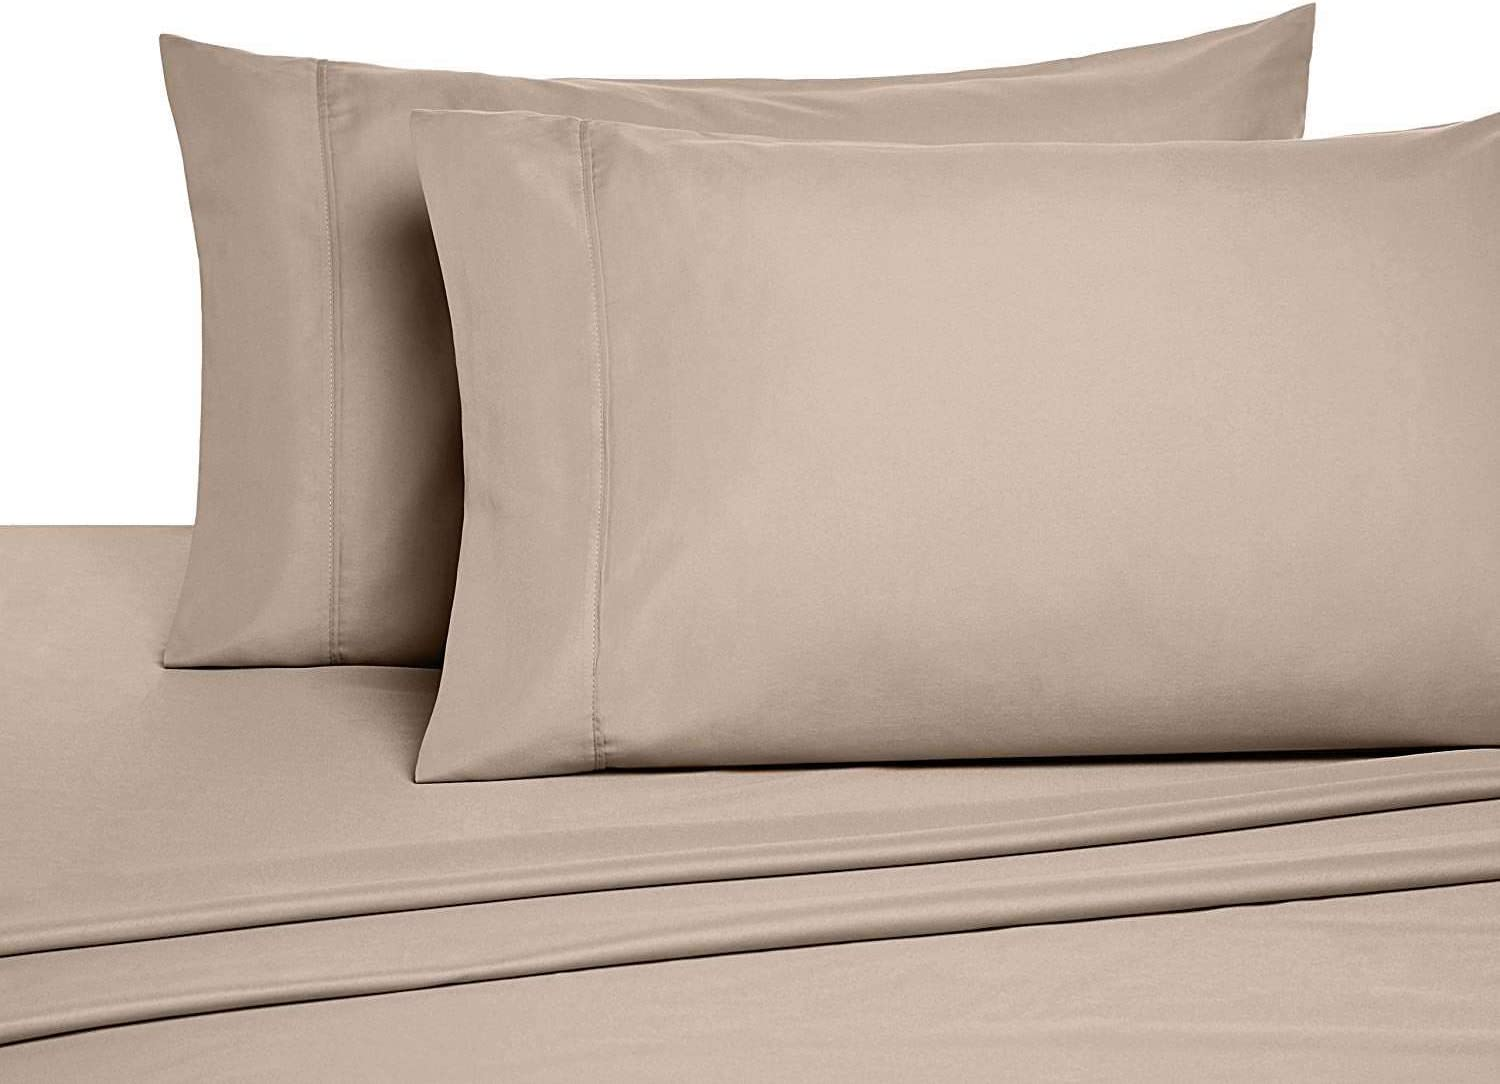 """4 PC Bedding Sheet Set 6-10"""" Deep Pocket 400 TC 100% Cotton for RV- Trucks, Campers, Airstream, Bus, Boat and motorhomes Easy to fit in RV-Mattress Taupe Solid (60 x 75) RV Short Queen"""